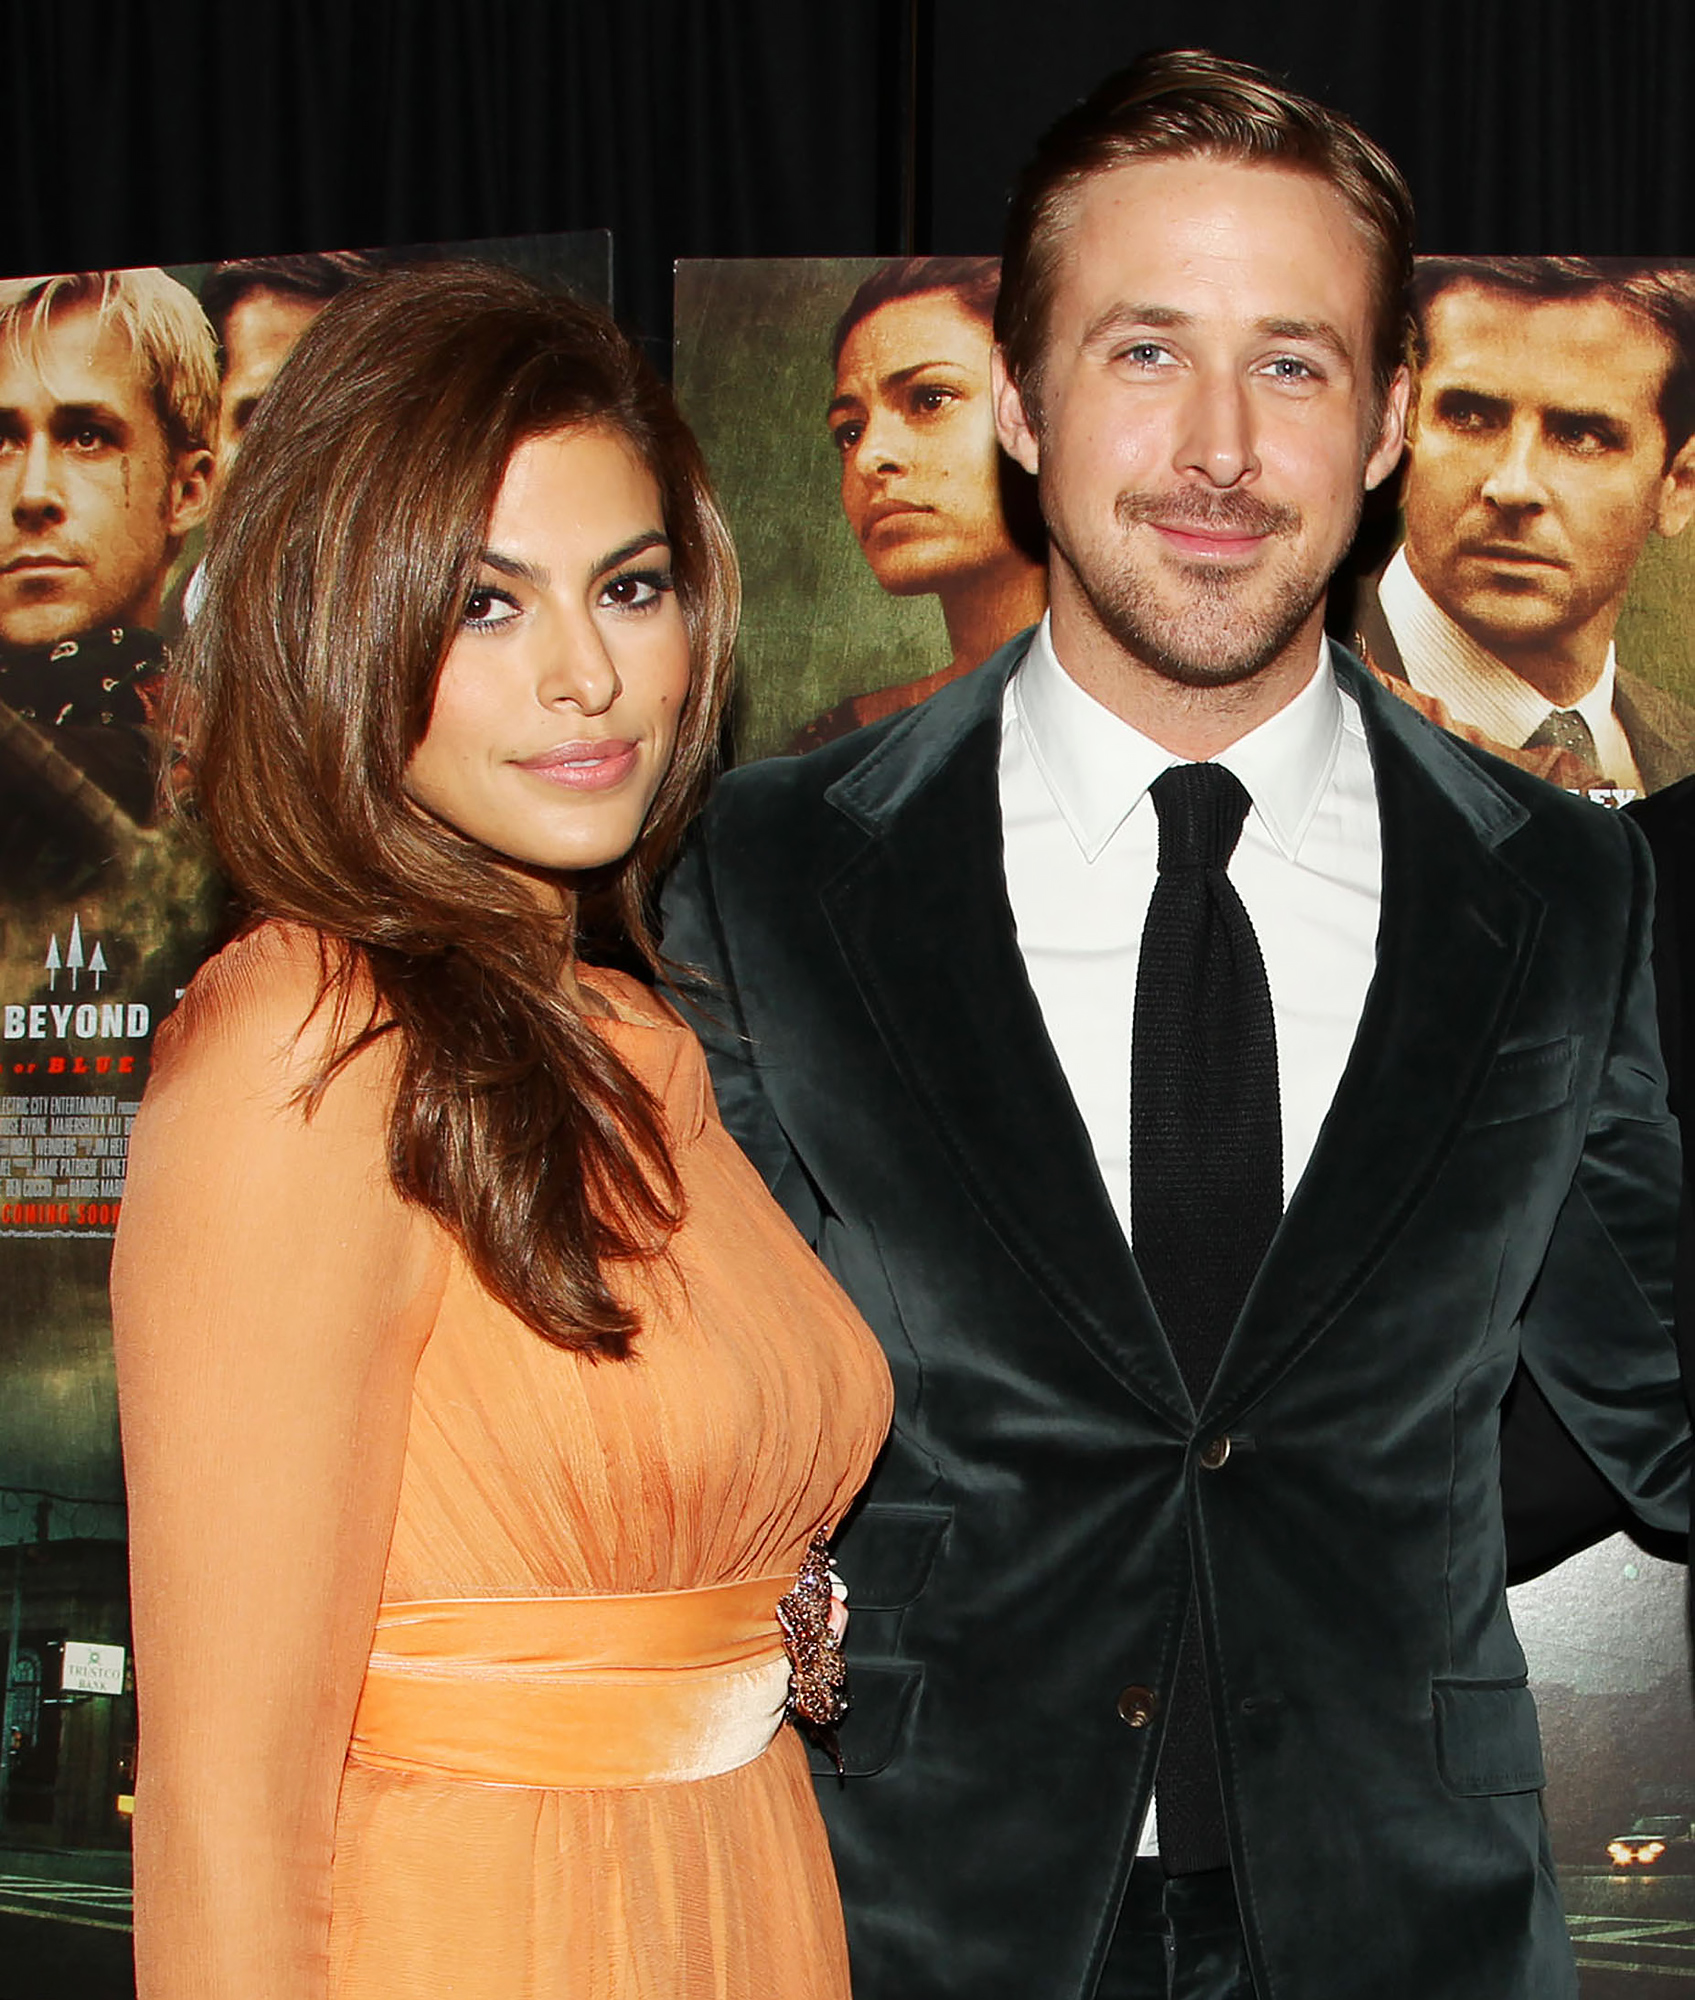 Ryan Gosling and Eva Mendes home life with kids